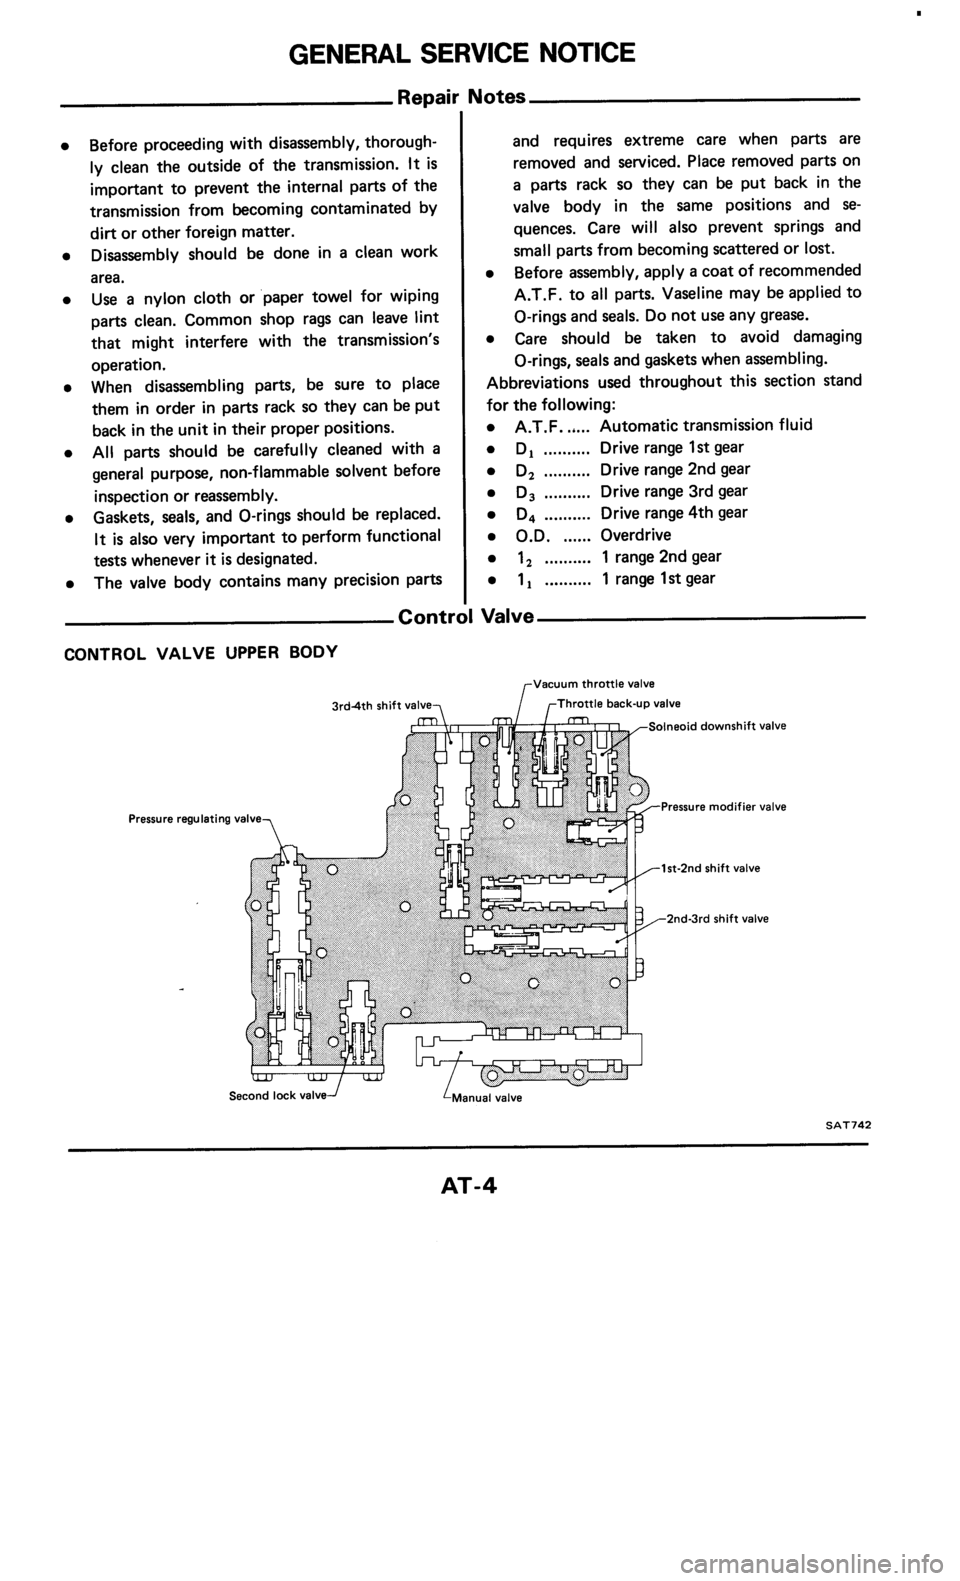 NISSAN 300ZX 1985 Z31 Automatic Transmission Workshop Manual, Page 4